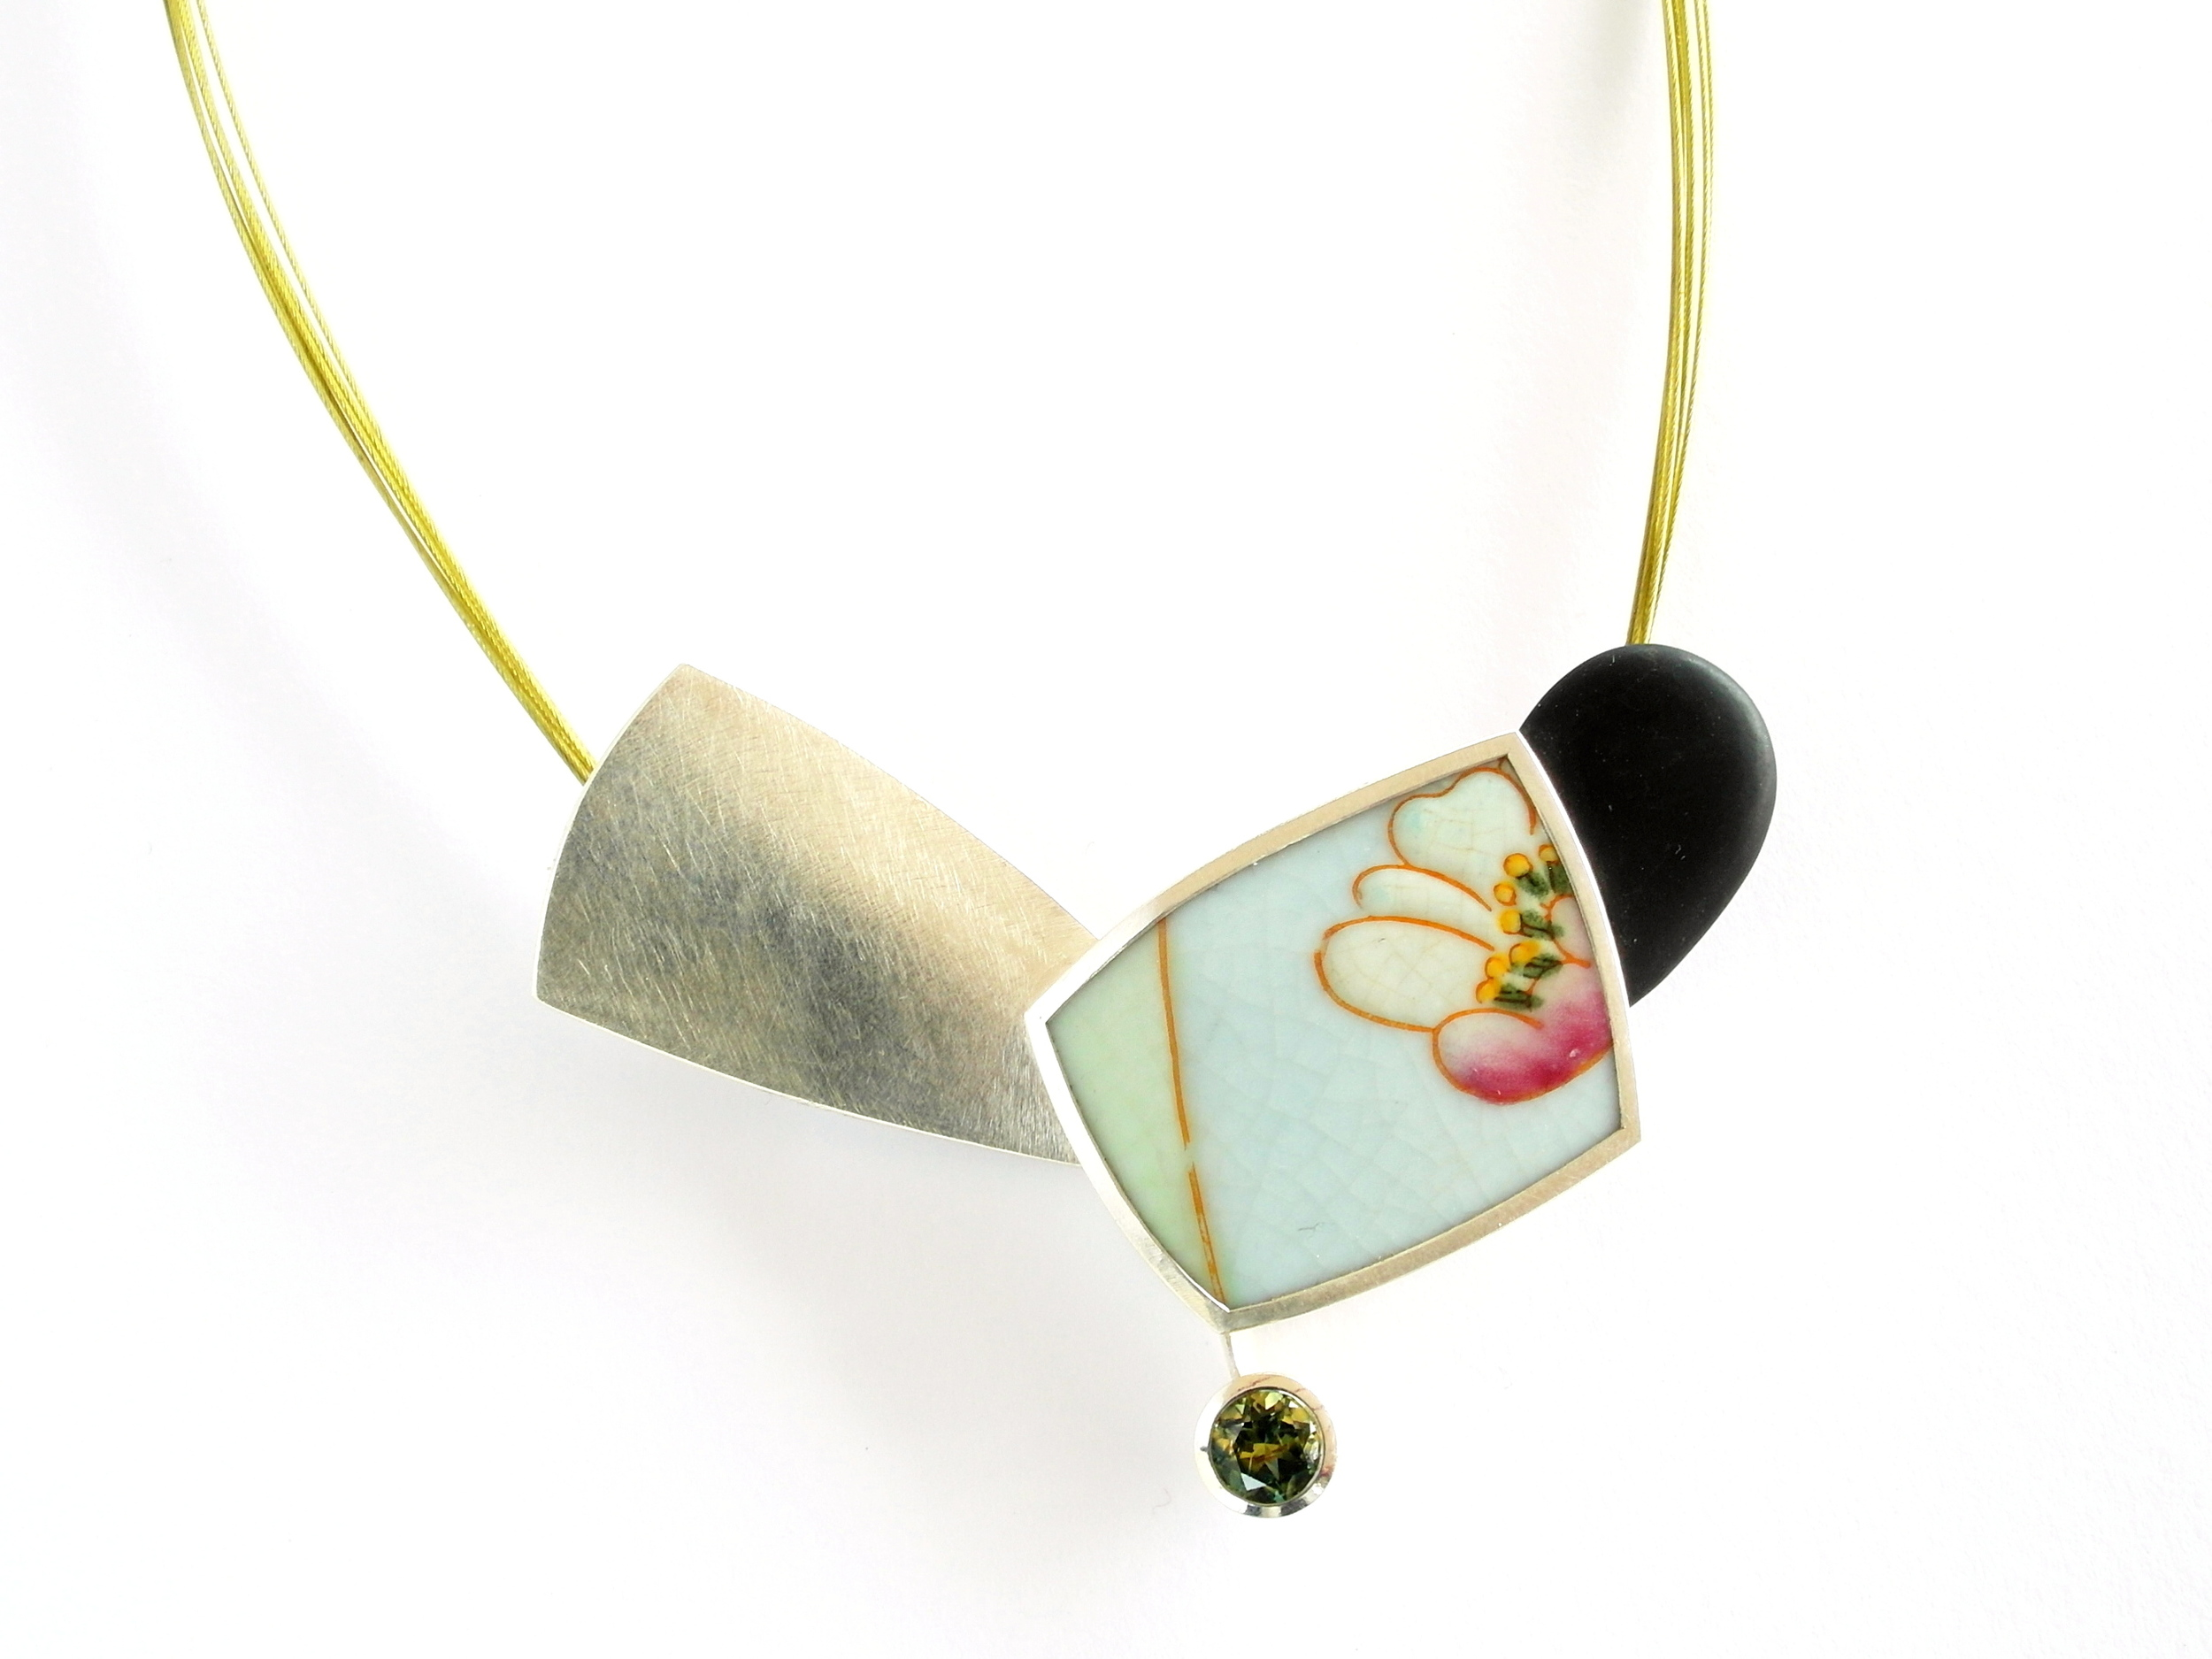 M745 Pendant by Marcus Foley 2015 - 925 silver, 1.56ct Australian sapphire, reclaimed ceramic, beach pebble (Private collection)